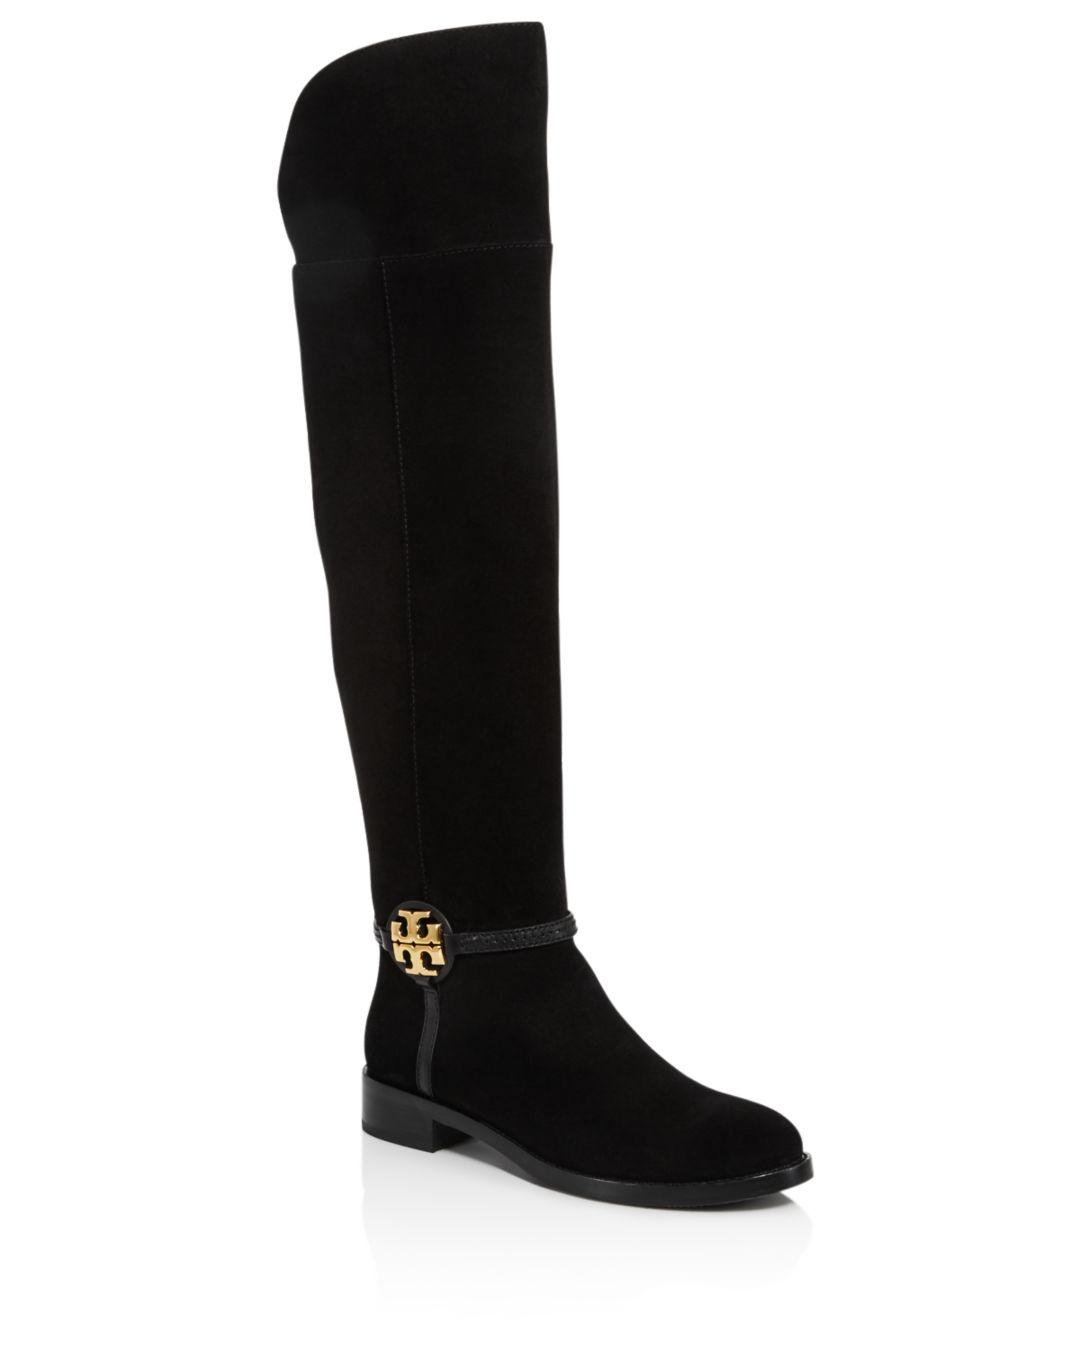 Tory Burch Leather Women's Miller Over